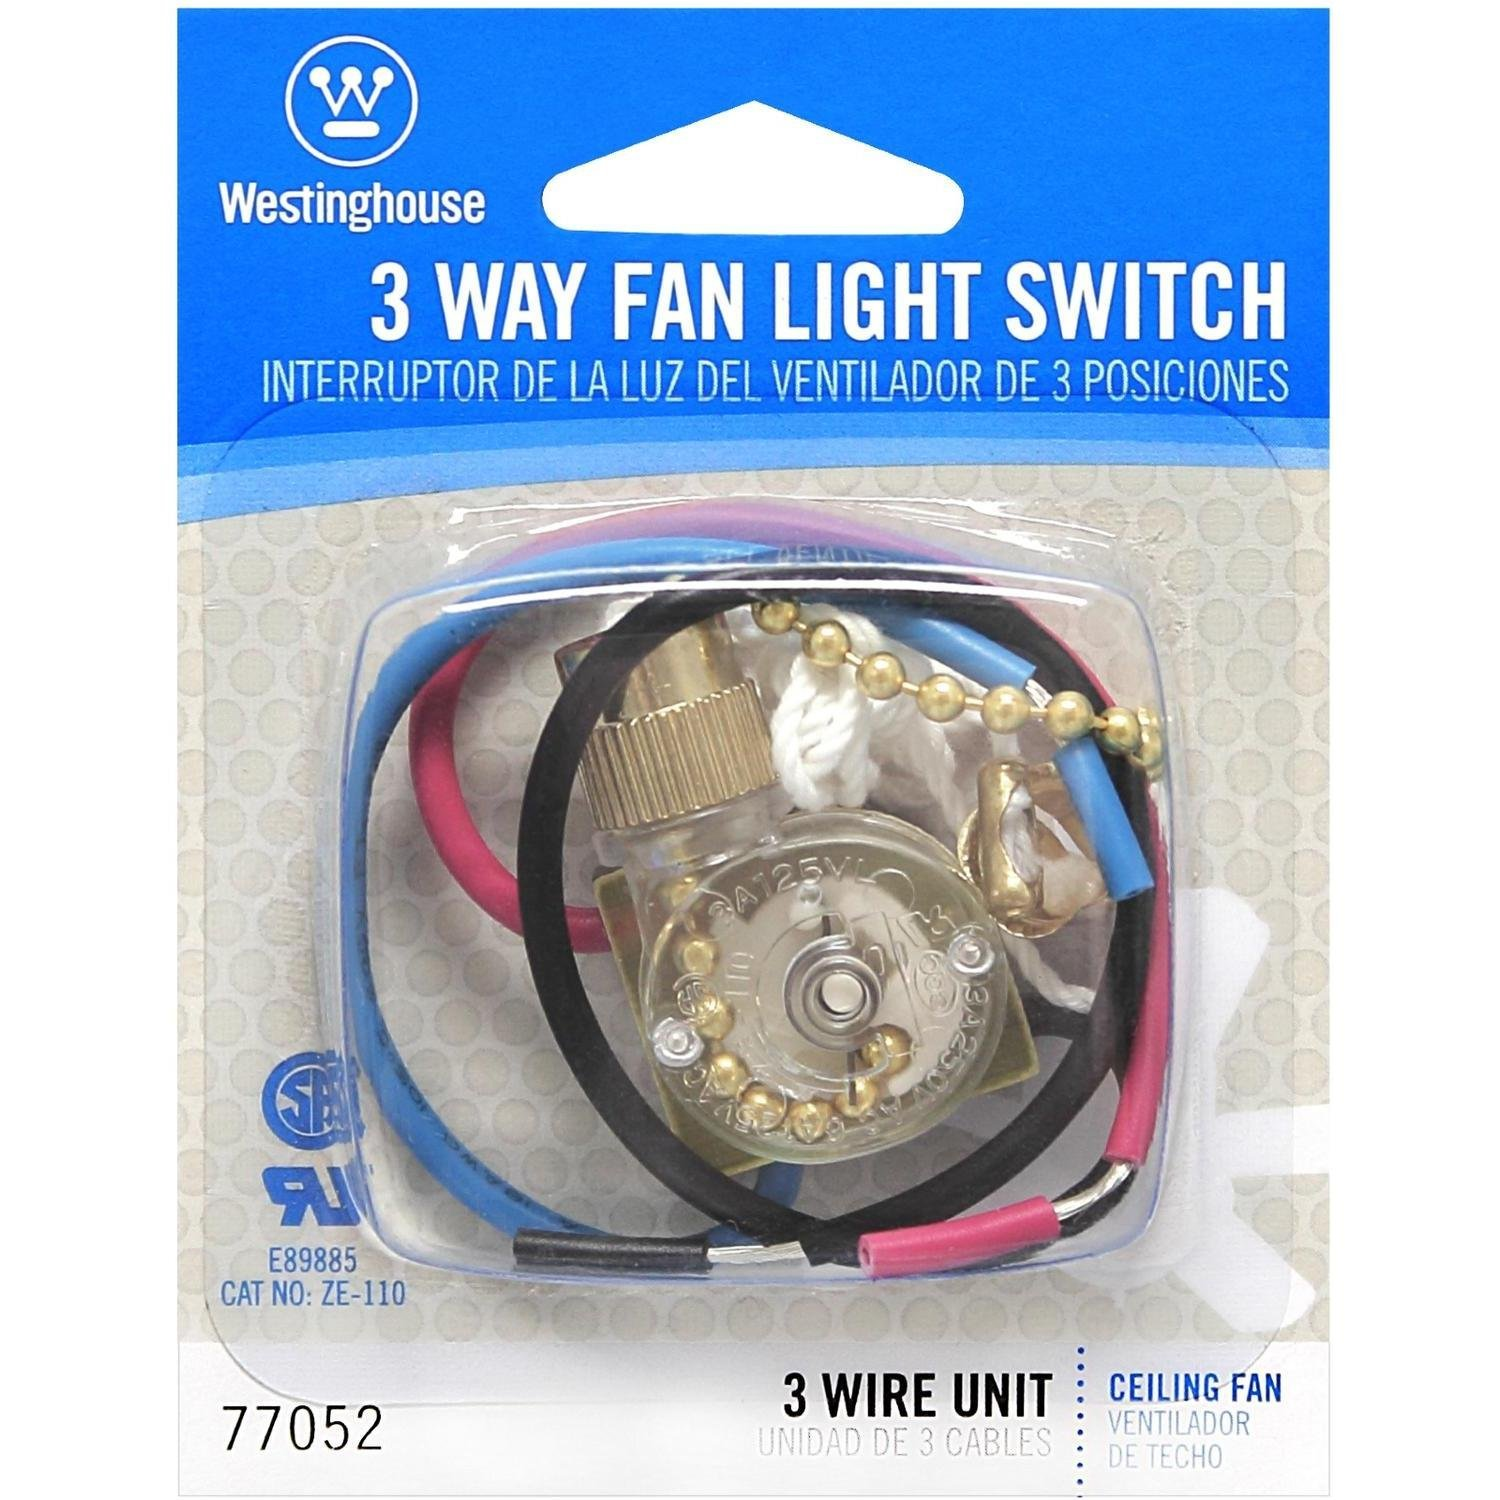 Westinghouse lighting corp 3 way fan light switch wall light westinghouse lighting corp 3 way fan light switch wall light switches amazon asfbconference2016 Choice Image